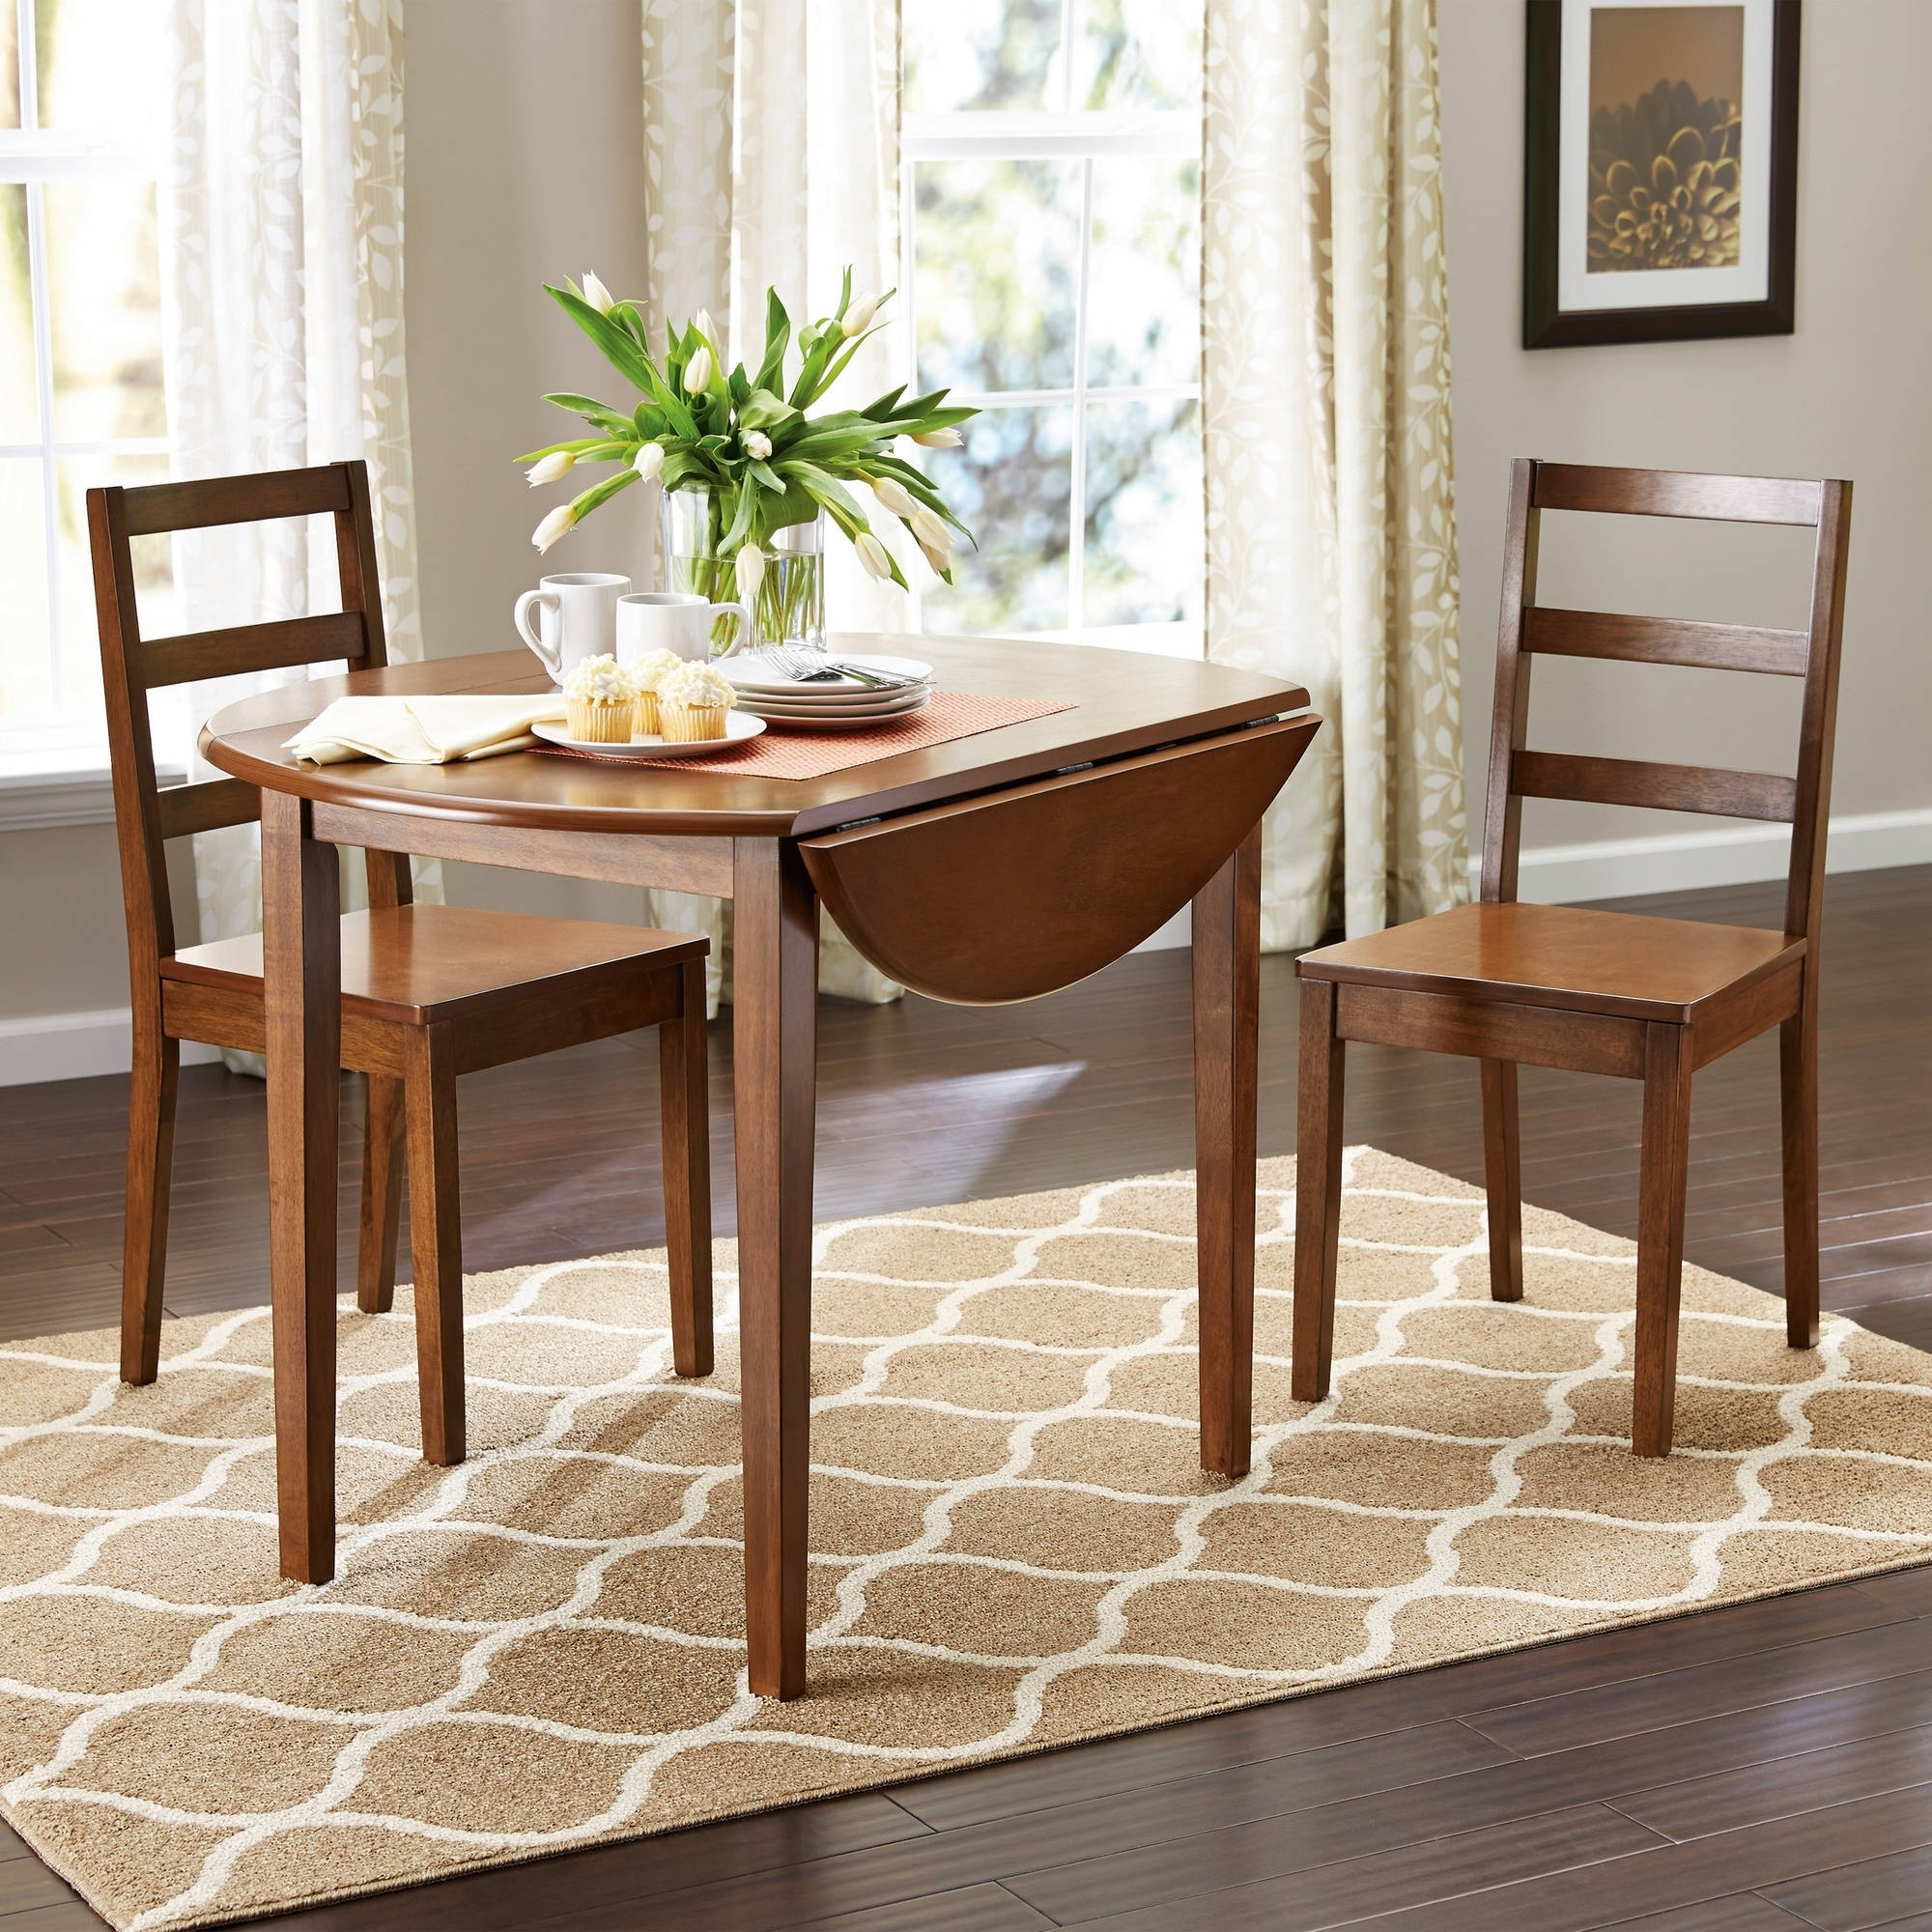 The 21 Beautiful Dining Room Tables Round With Leaves Regarding Well Known Two Person Dining Tables (View 14 of 25)